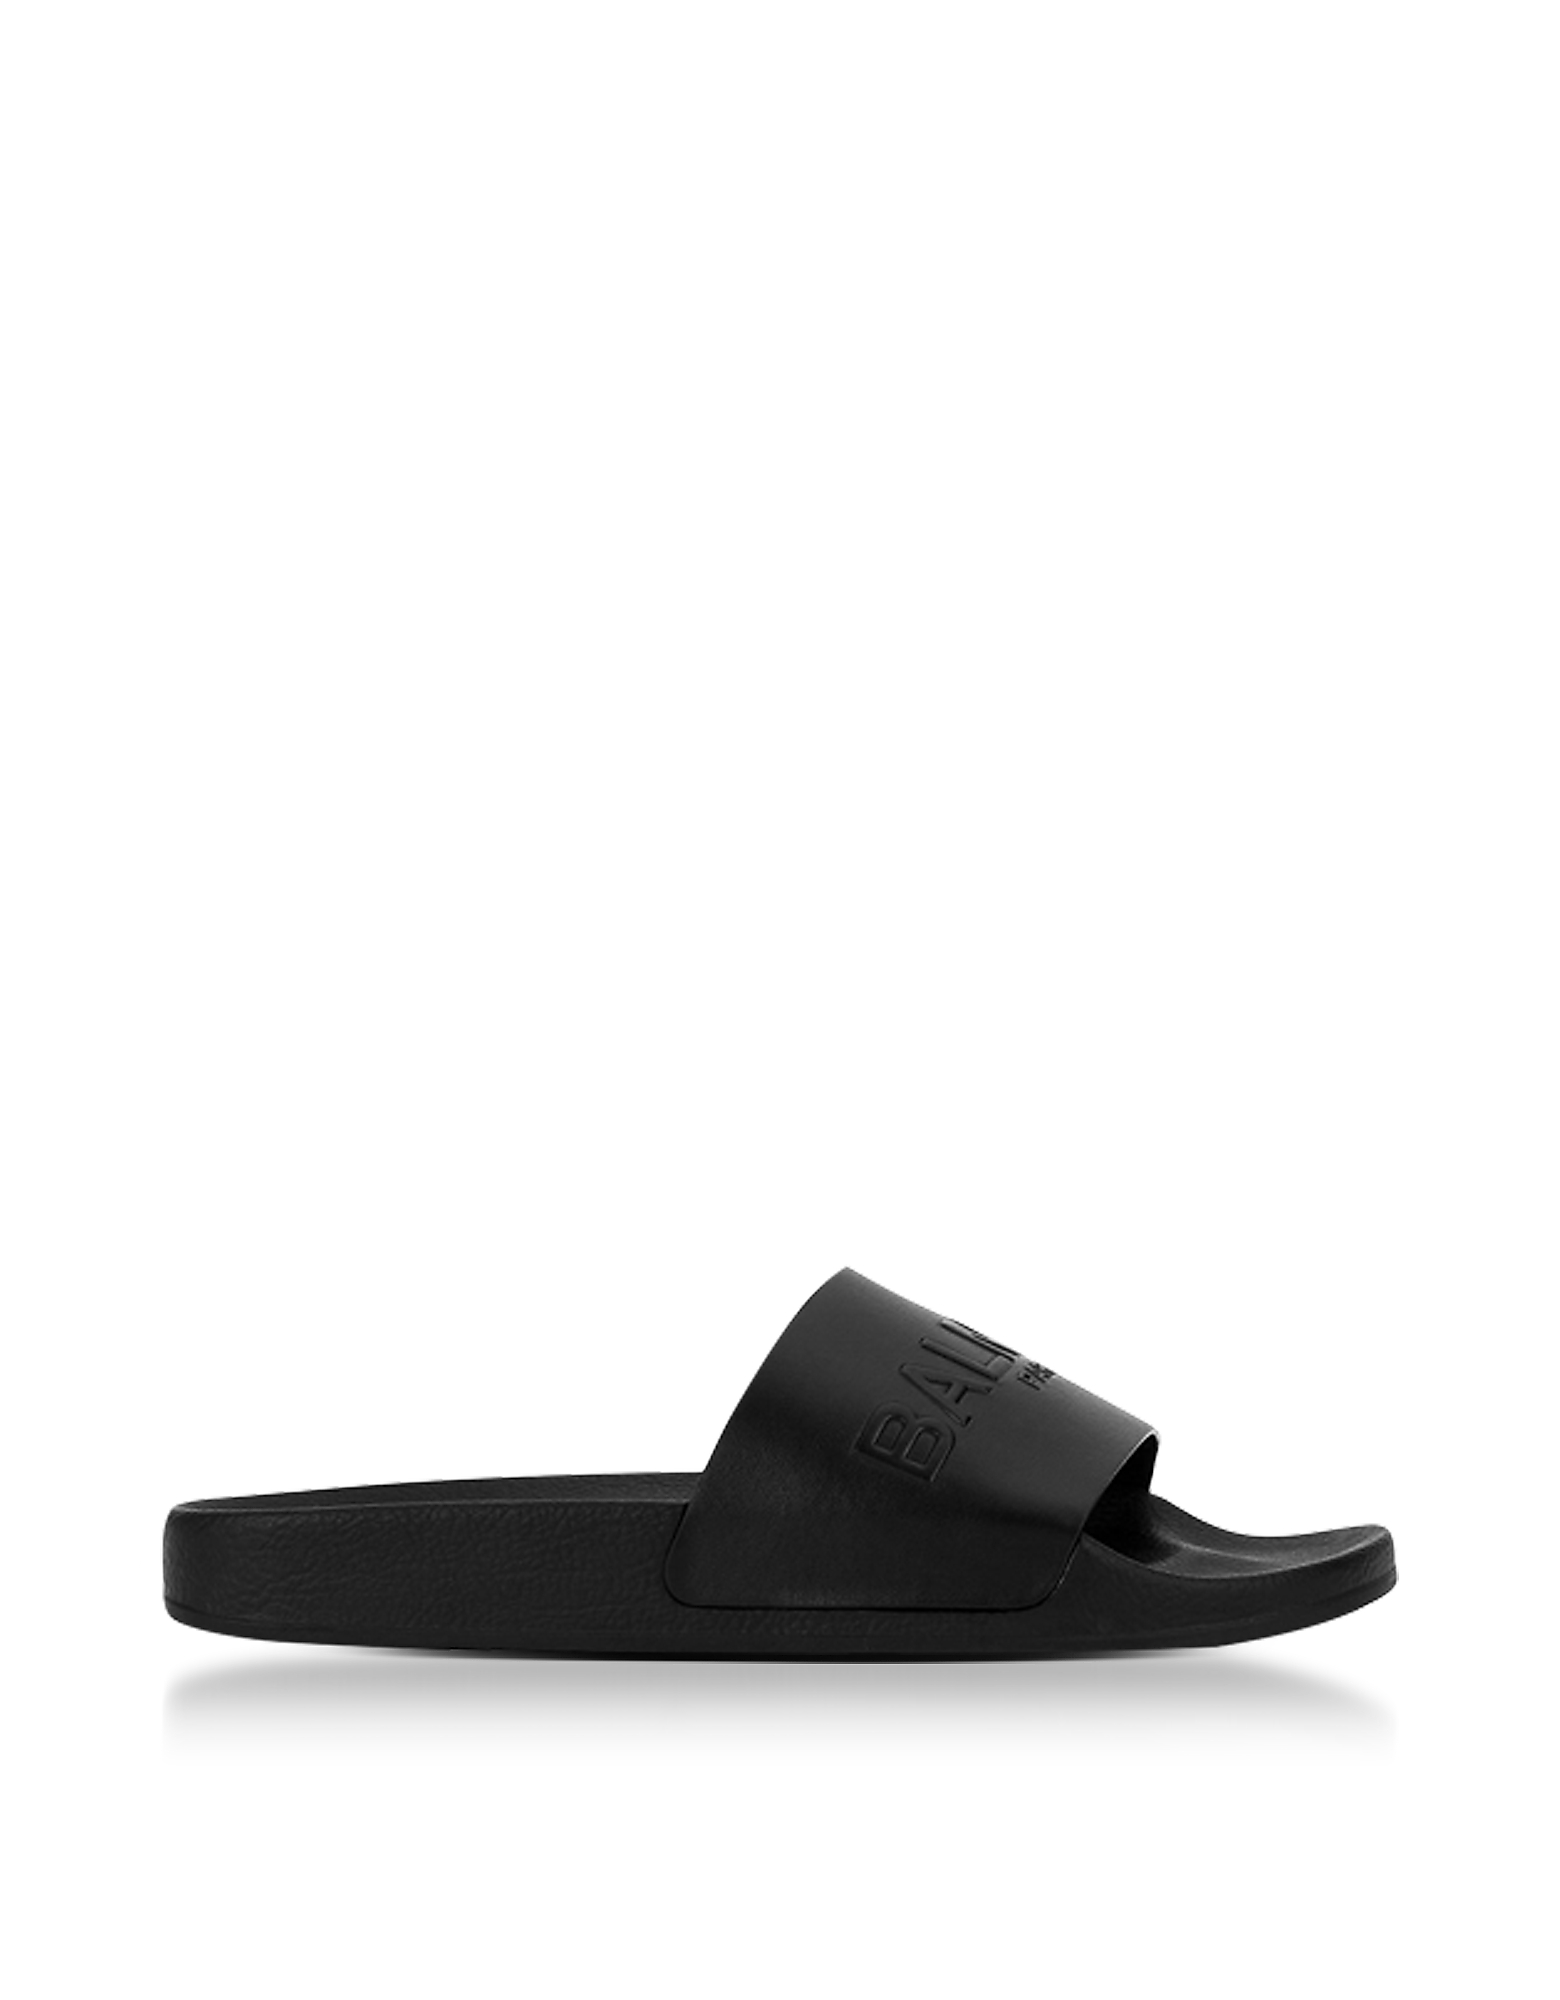 Balmain Shoes, Black Leather Calypso Men's Slide Sandals